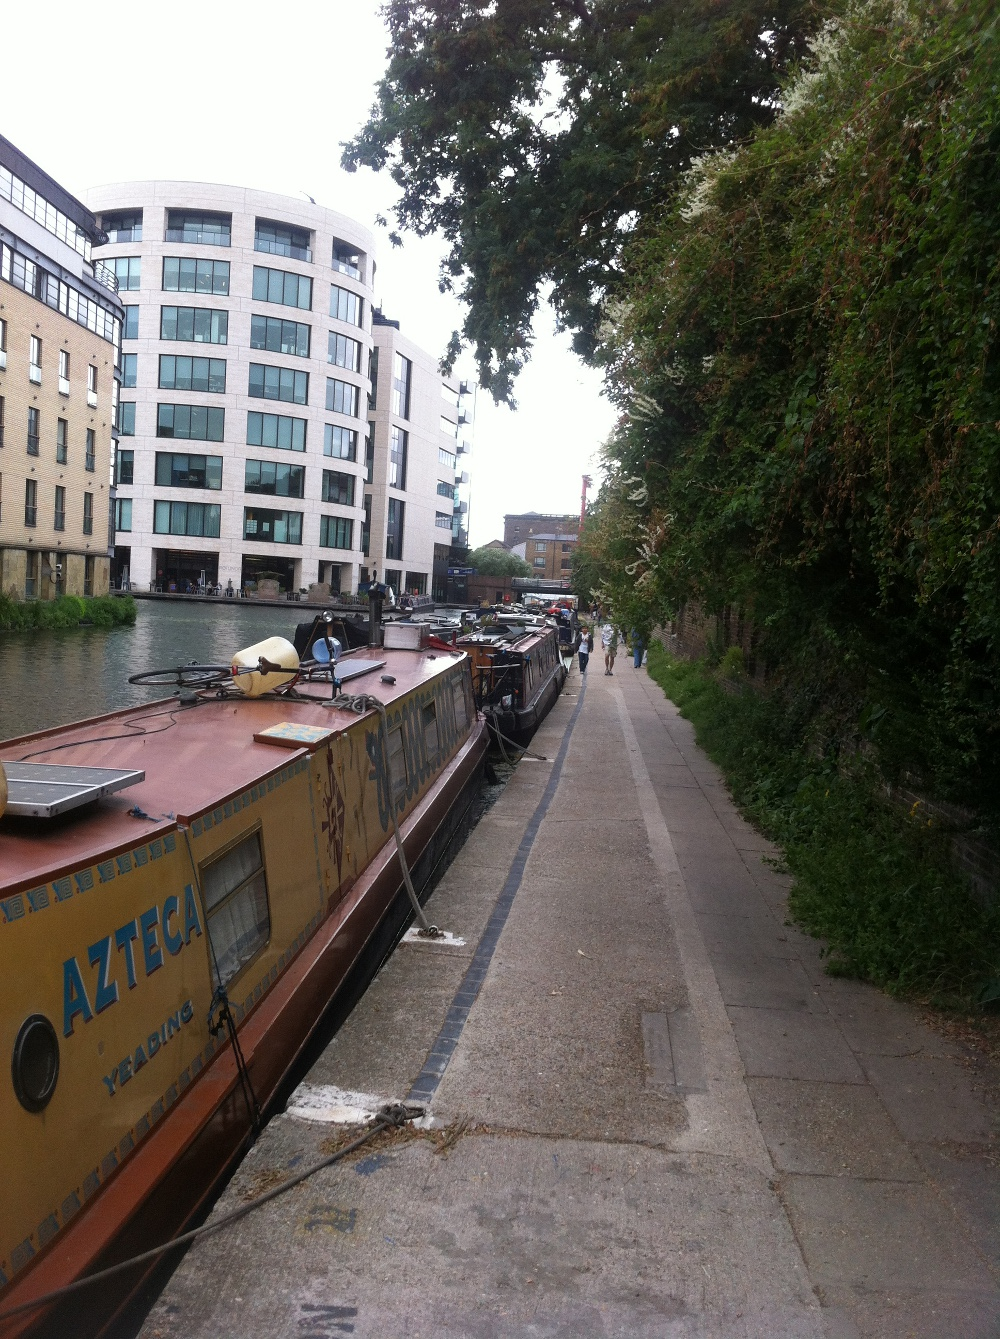 Regents Canal at King's Cross